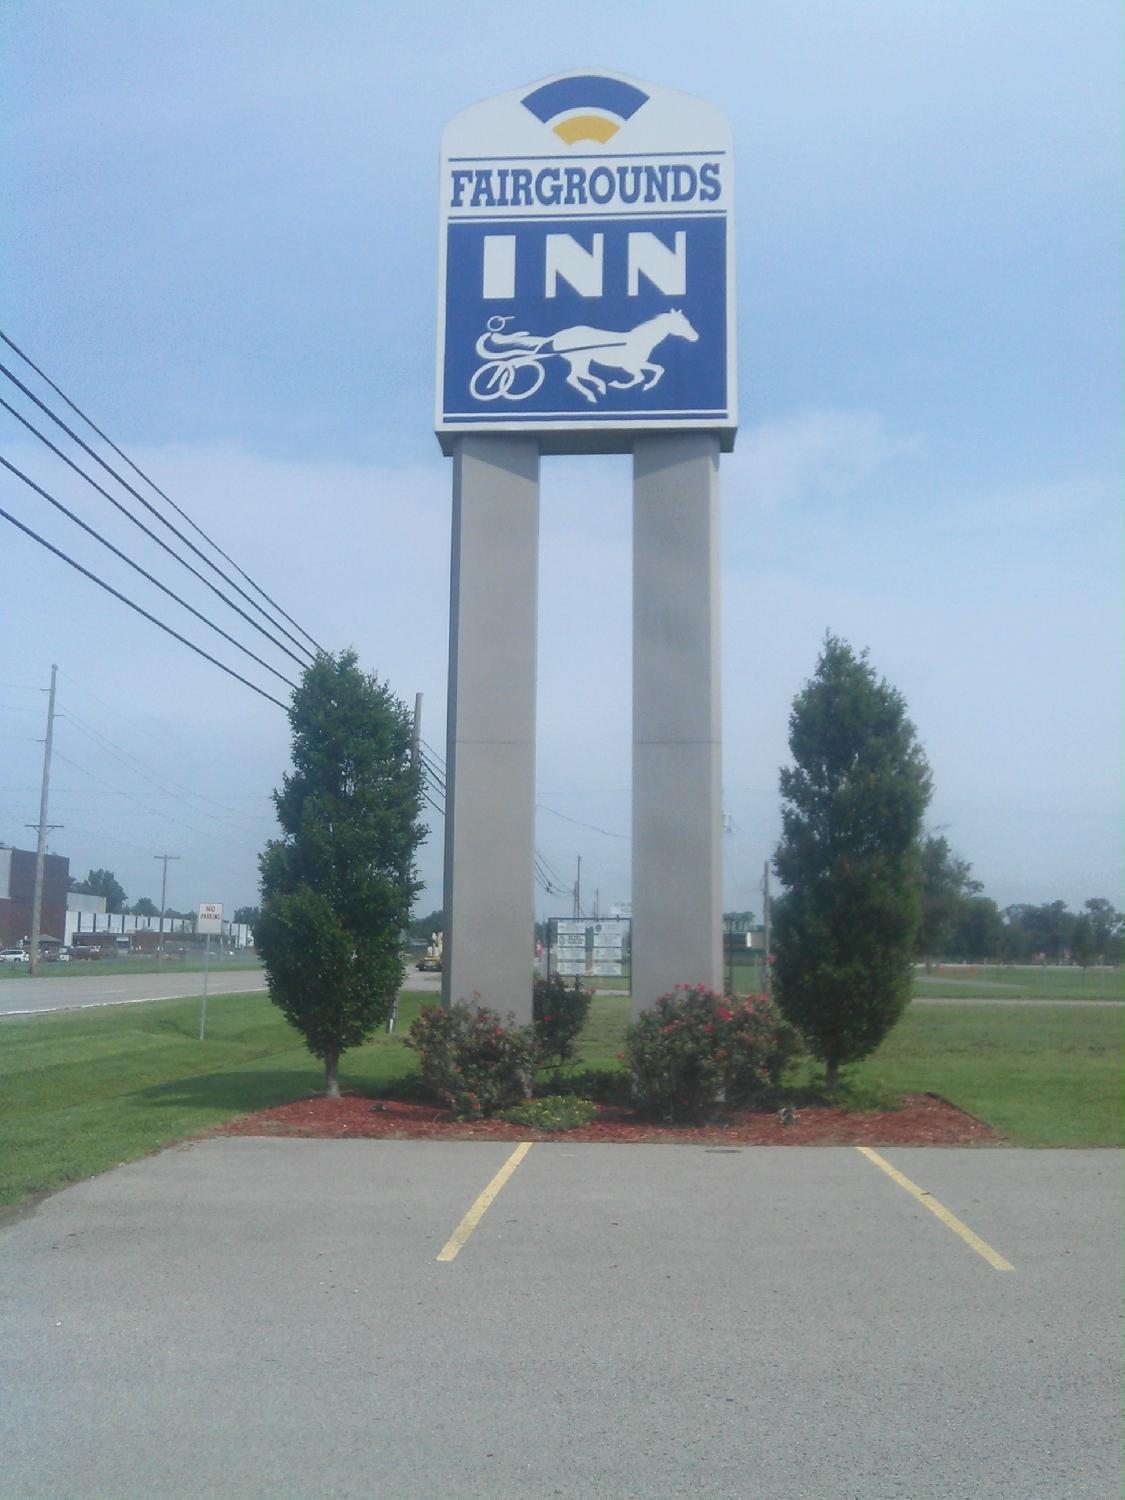 Fairgrounds Inn Du Quoin